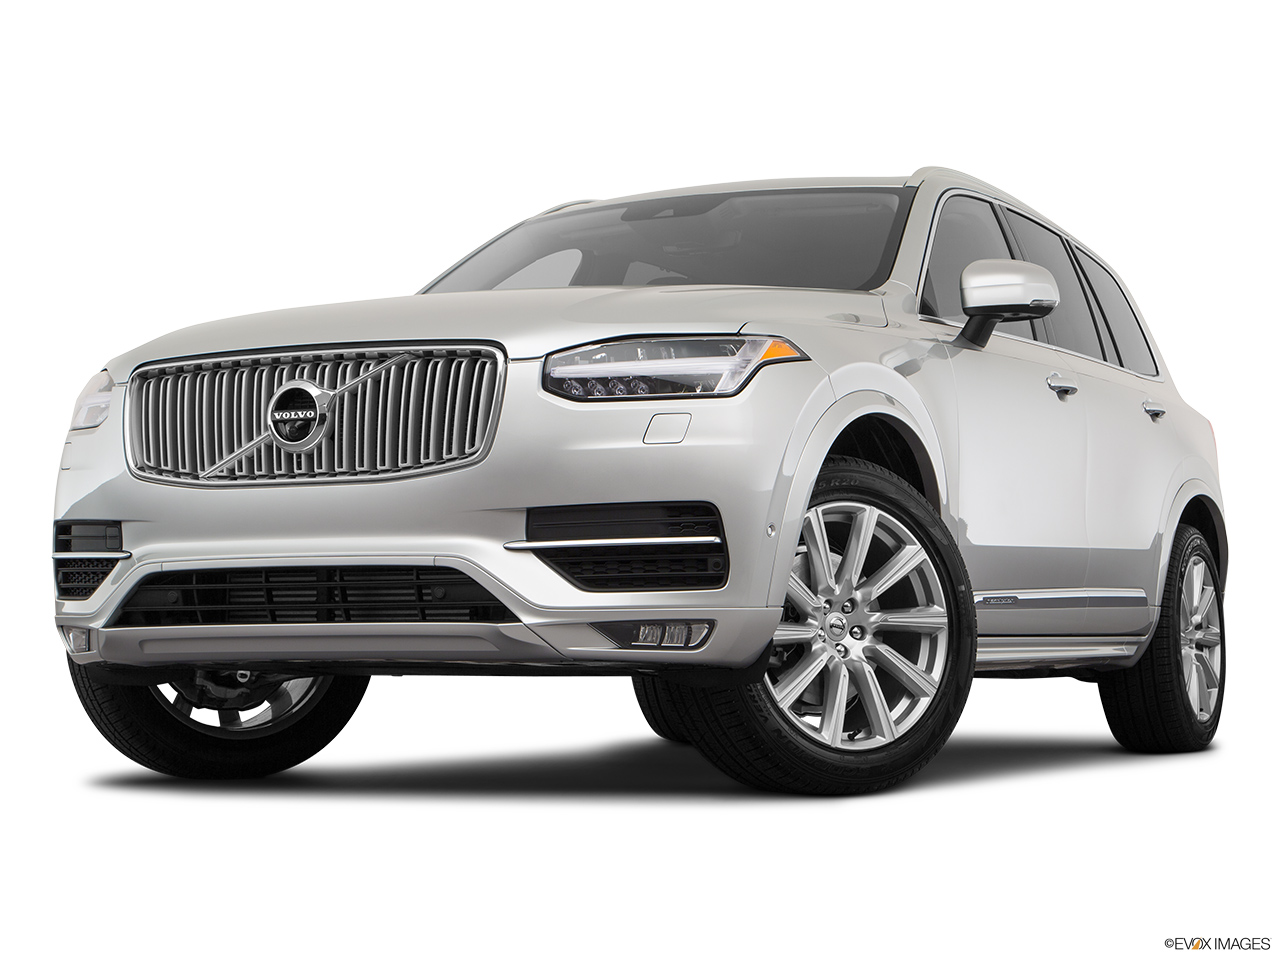 2019 Volvo XC90  T6 Inscription Front angle view, low wide perspective.